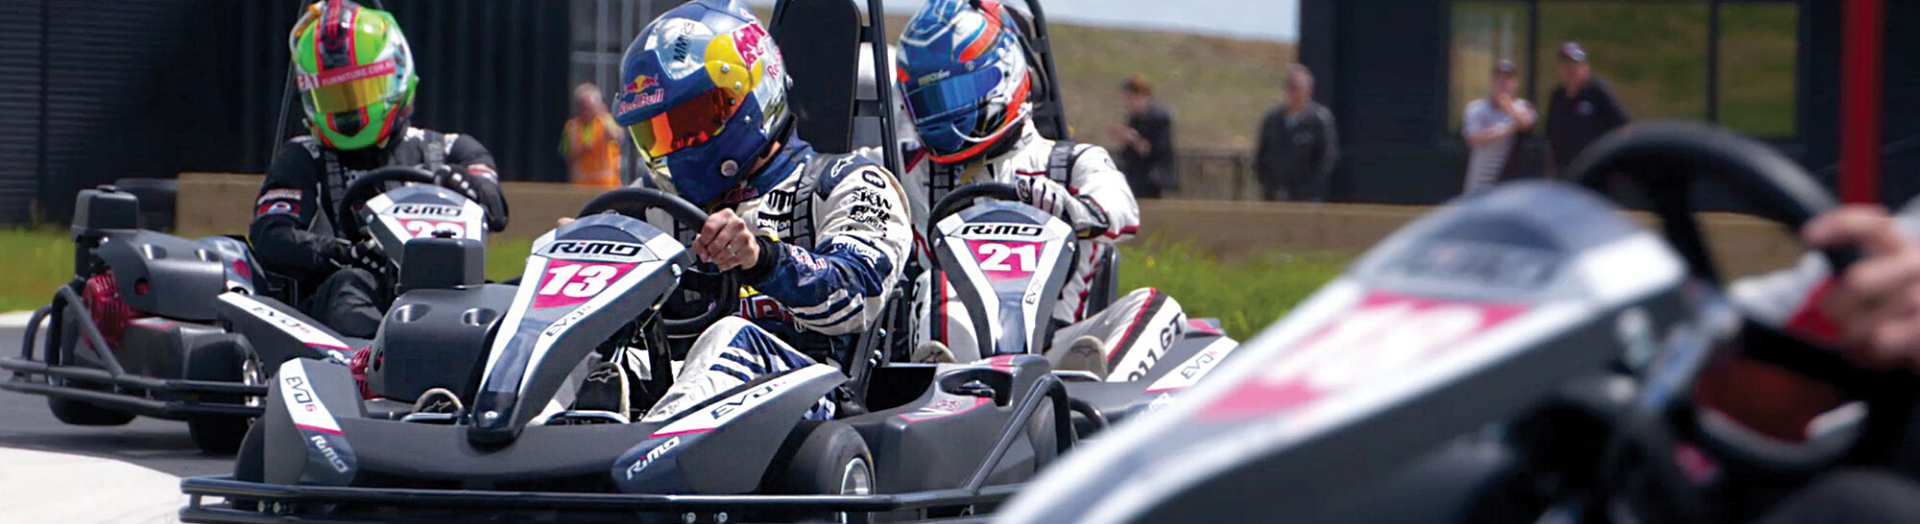 Hampton_downs_go_karts